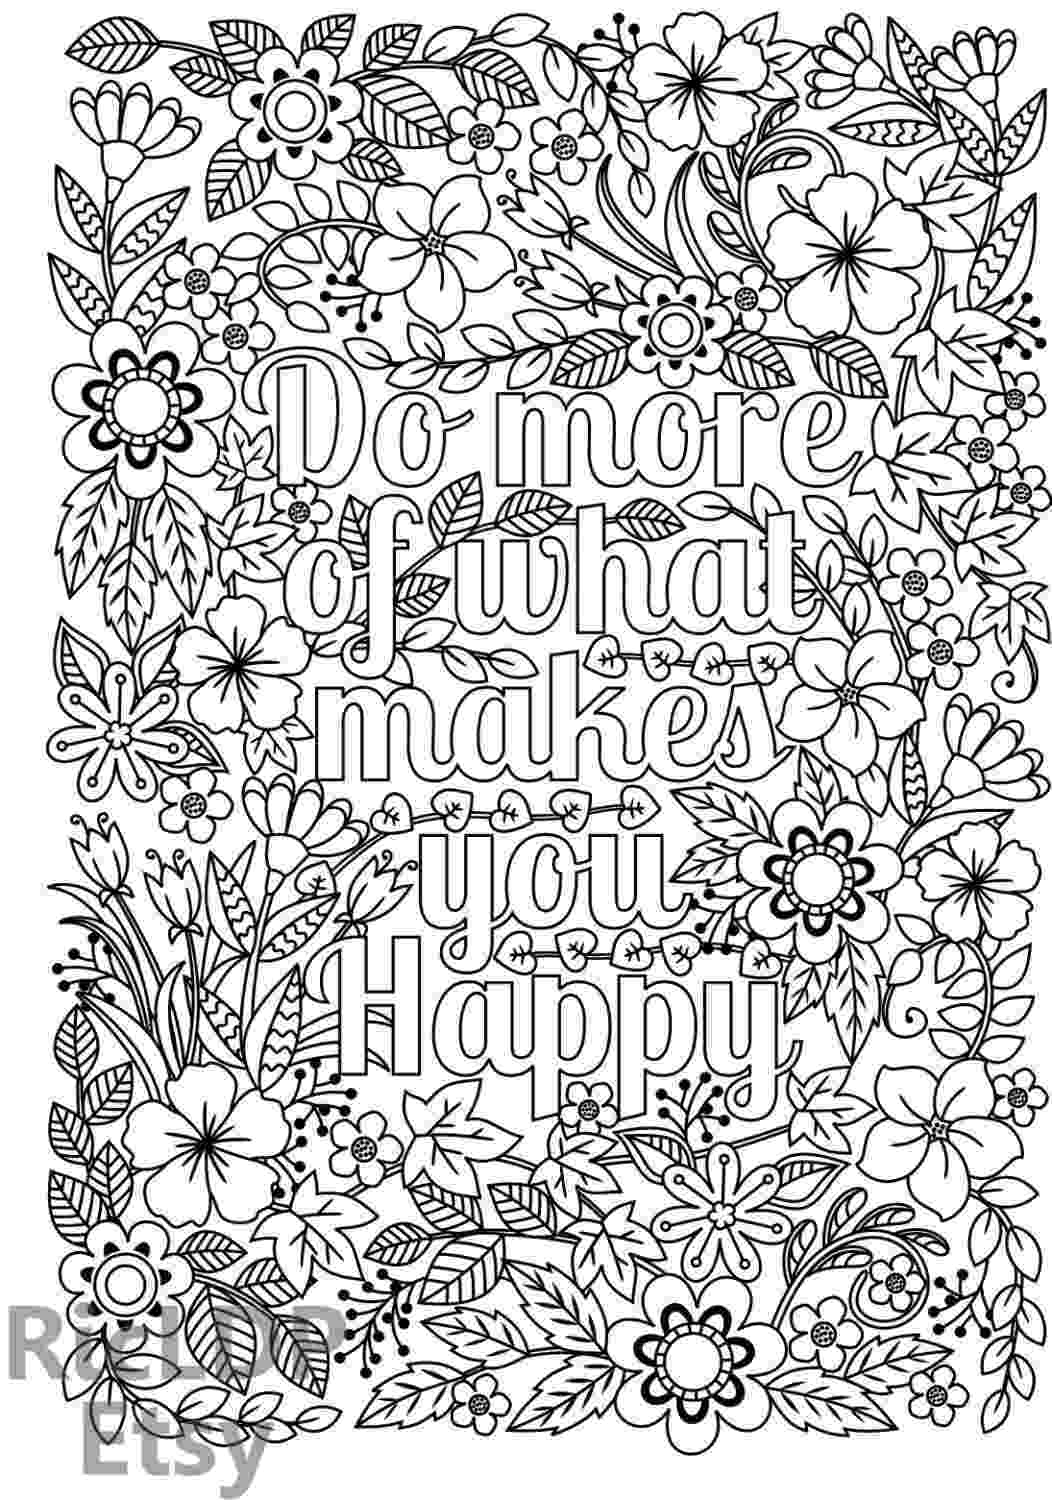 printable flower coloring pages for adults flower coloring pages for adults best coloring pages for for pages adults flower coloring printable